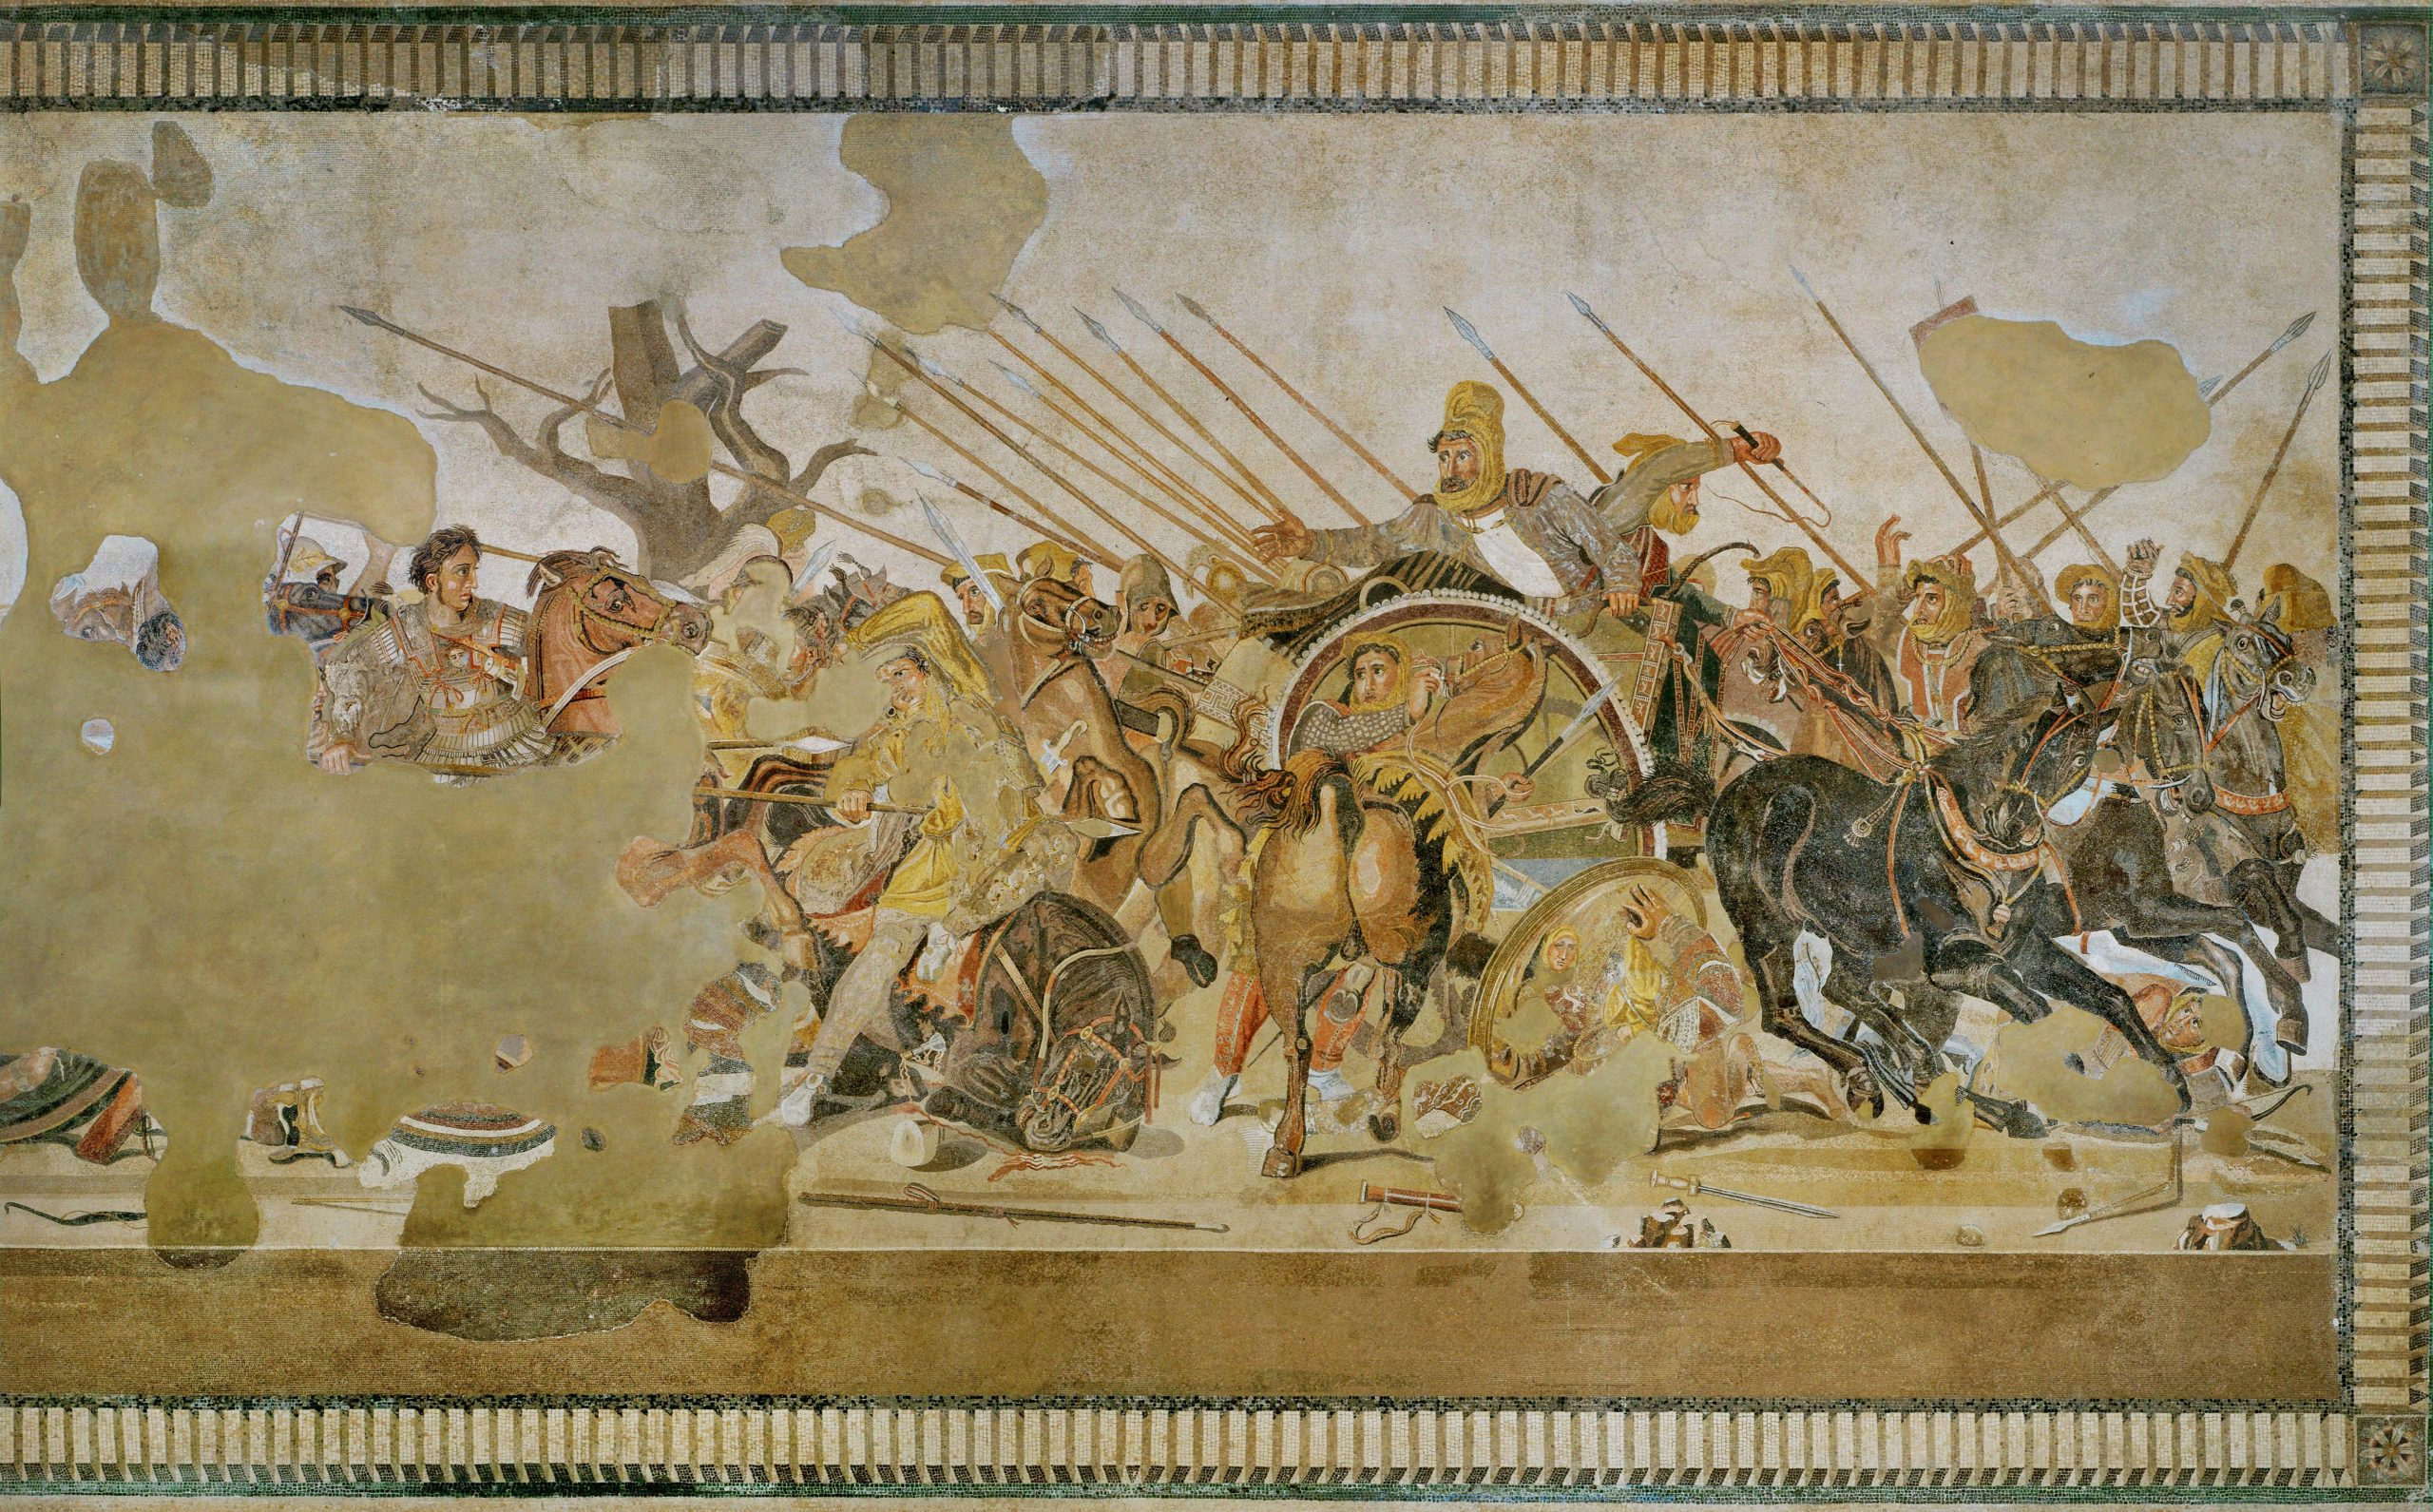 Alexander_(Battle_of_Issus)_Mosaic